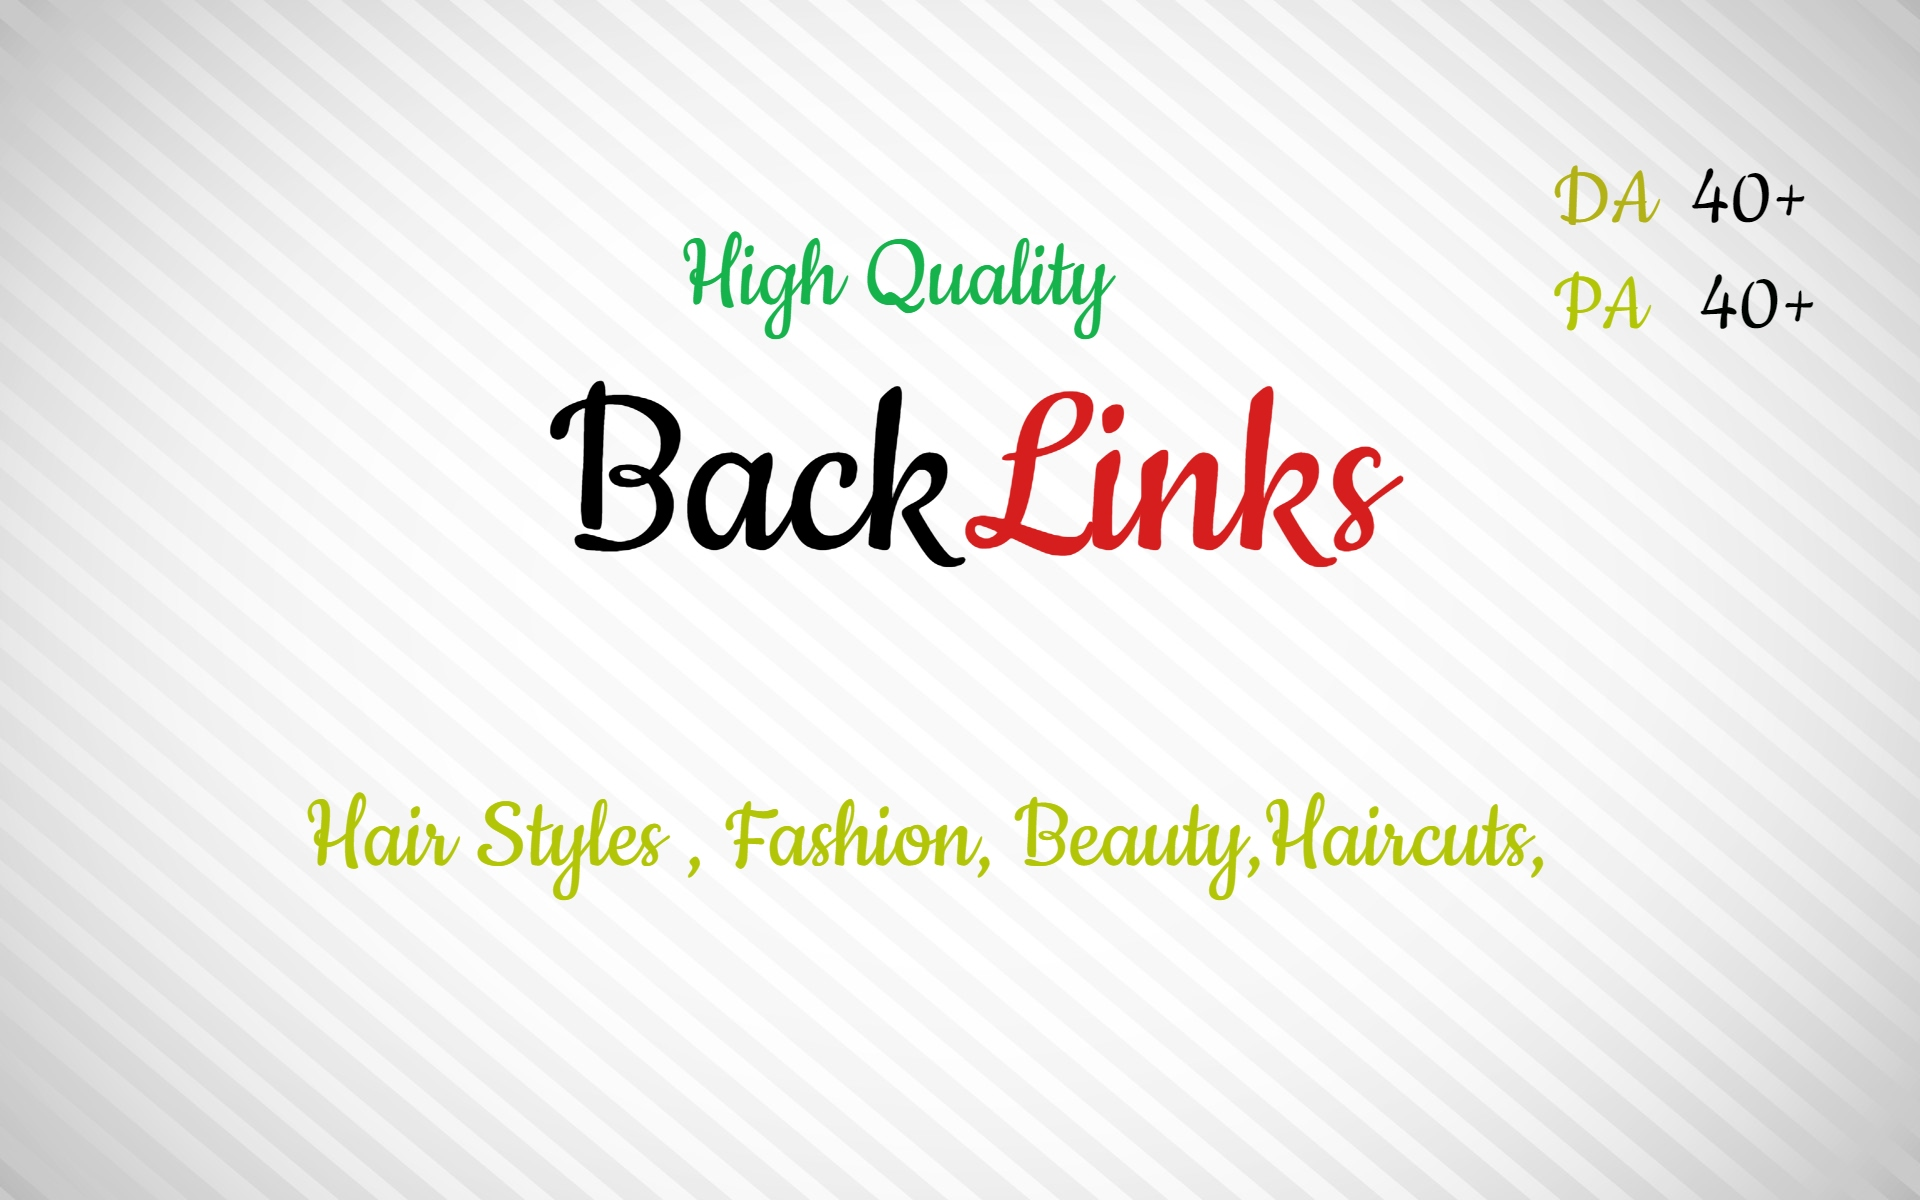 Backlink site of hairstyles and fashion. Build High PR quality backlinks PA DA 40+